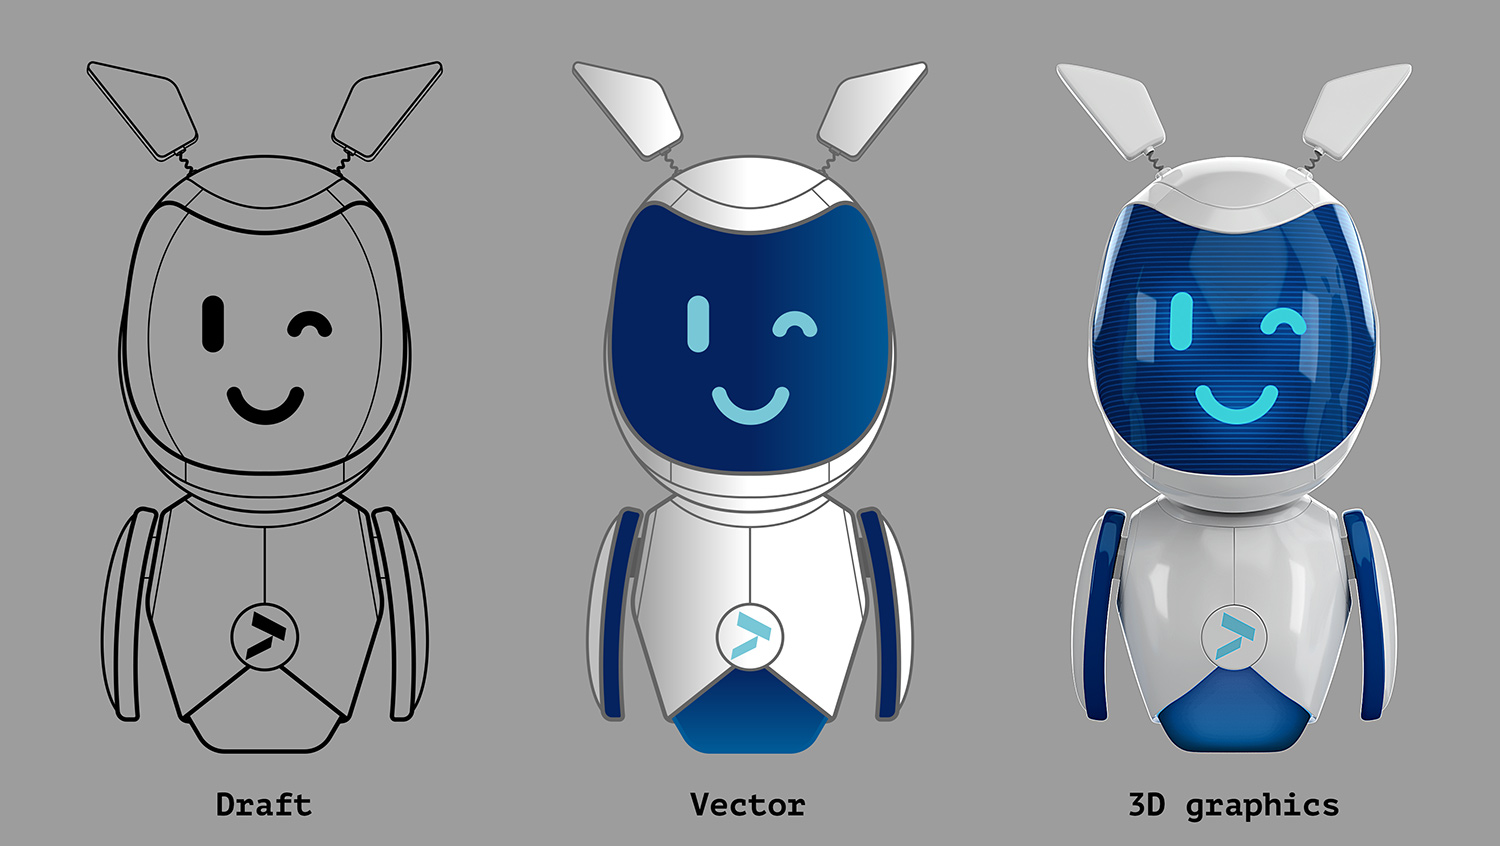 Altbank's corporate character—robot Alt. The vector robot, the 3D model of the robot.